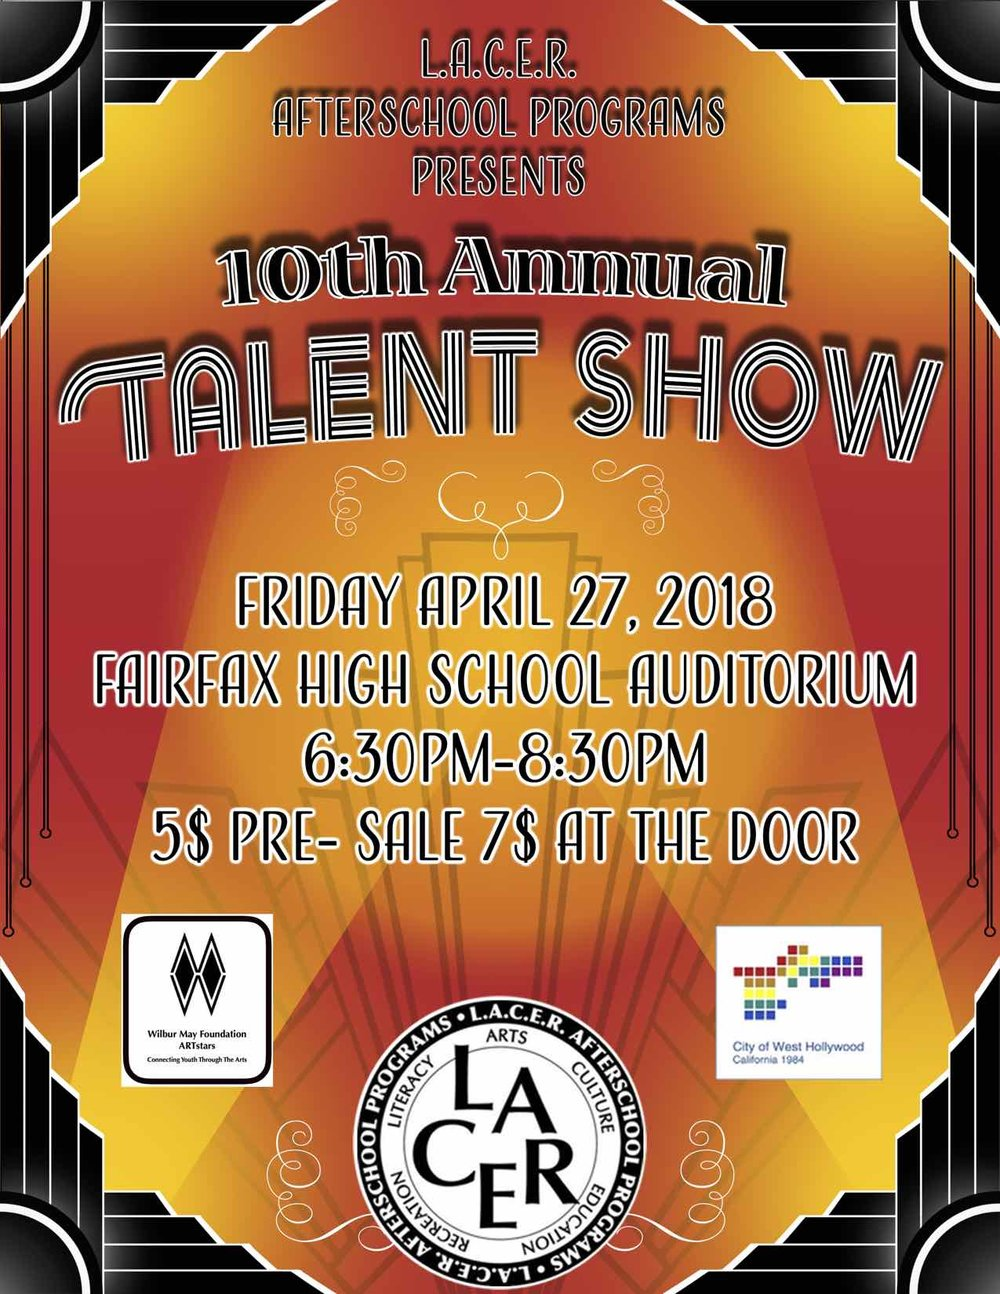 FHS Talent Show Flyer 2018 Small.jpg